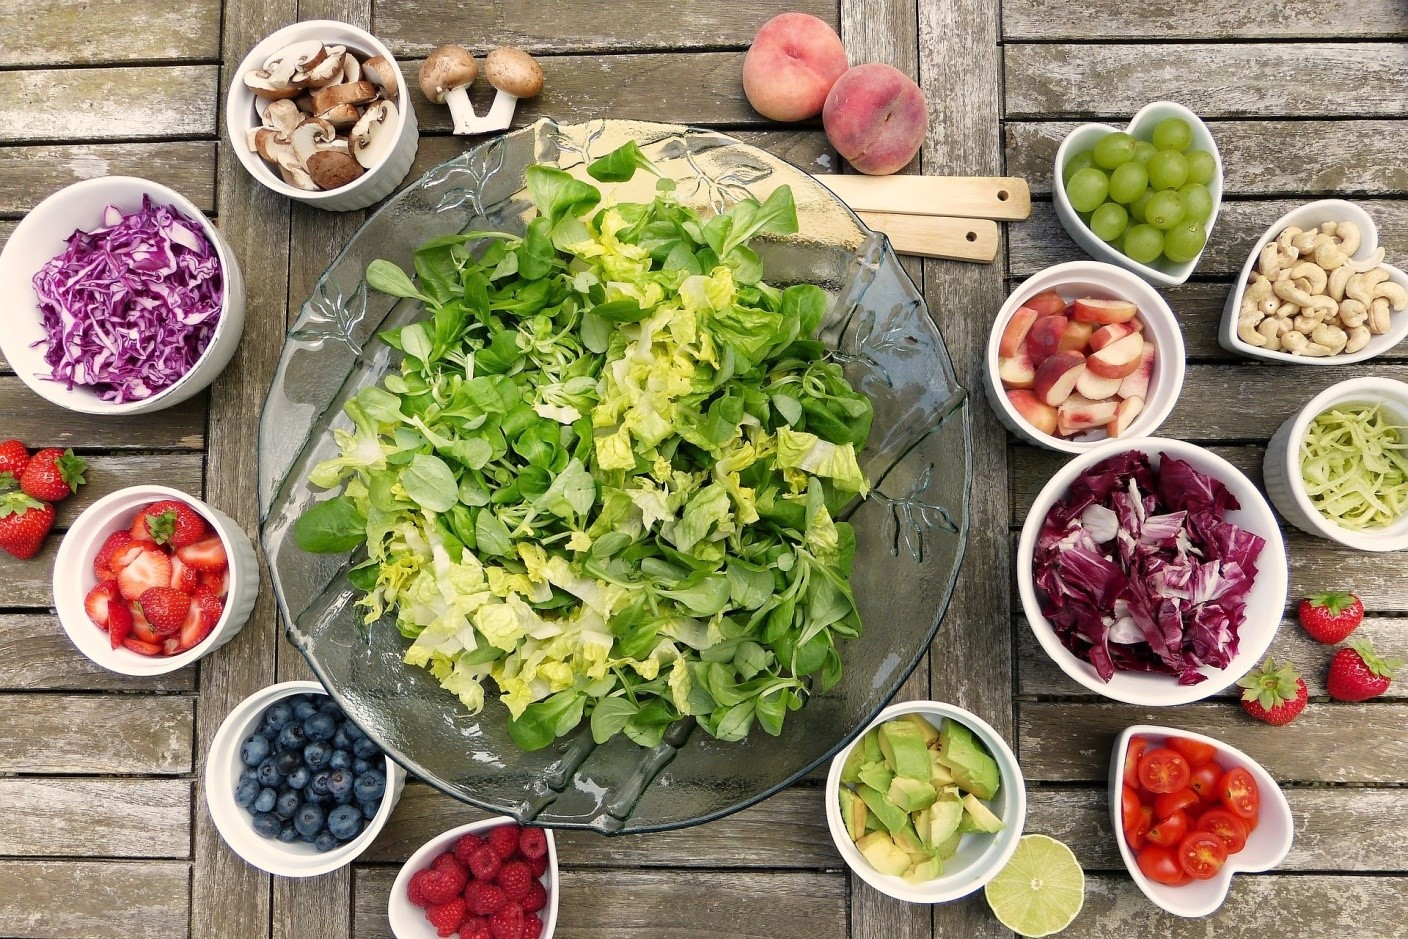 Tips To Eat Healthy When On The Road